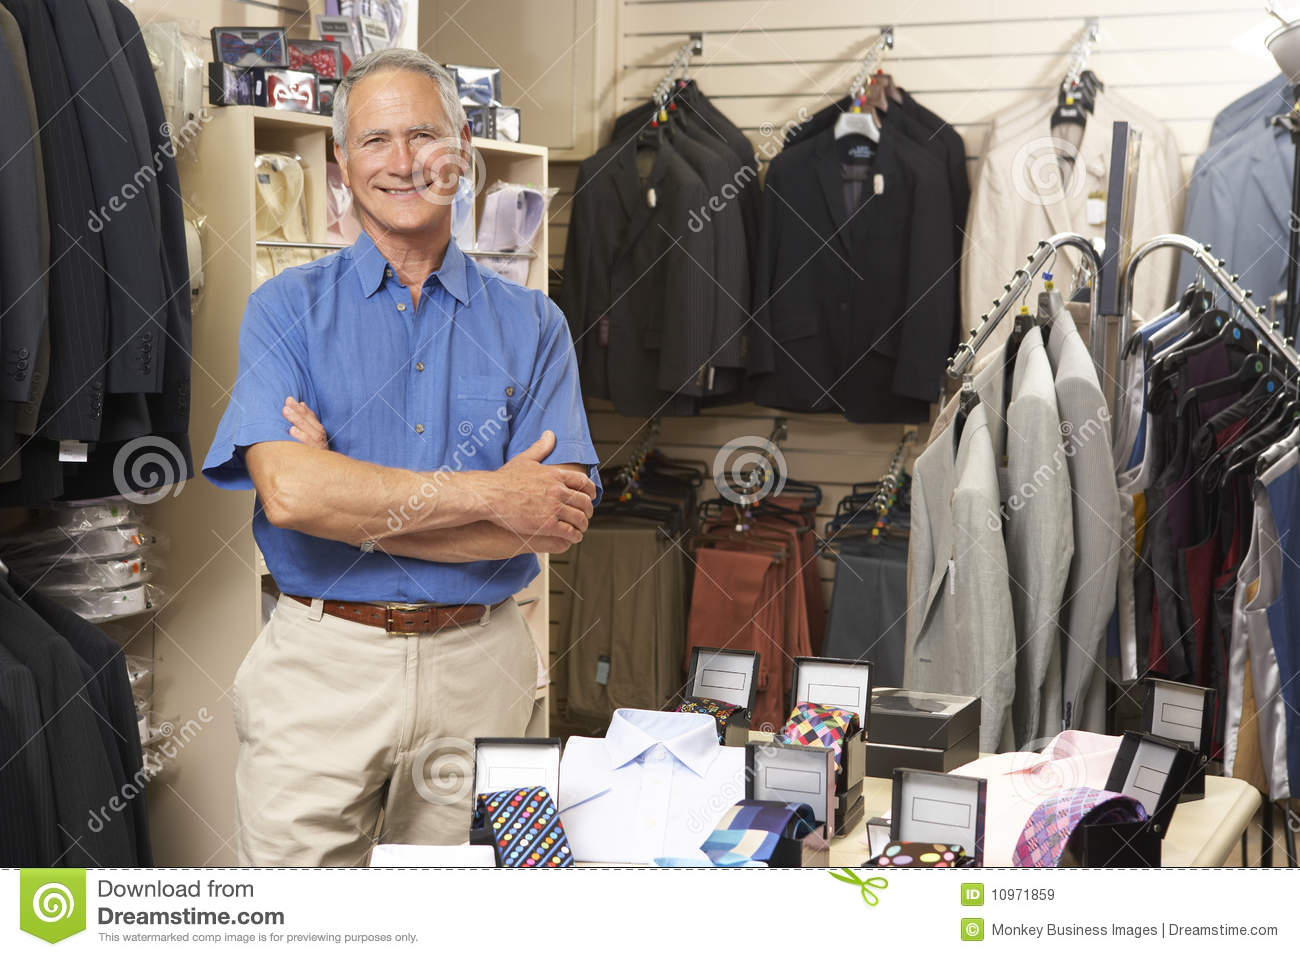 Male clothing stores